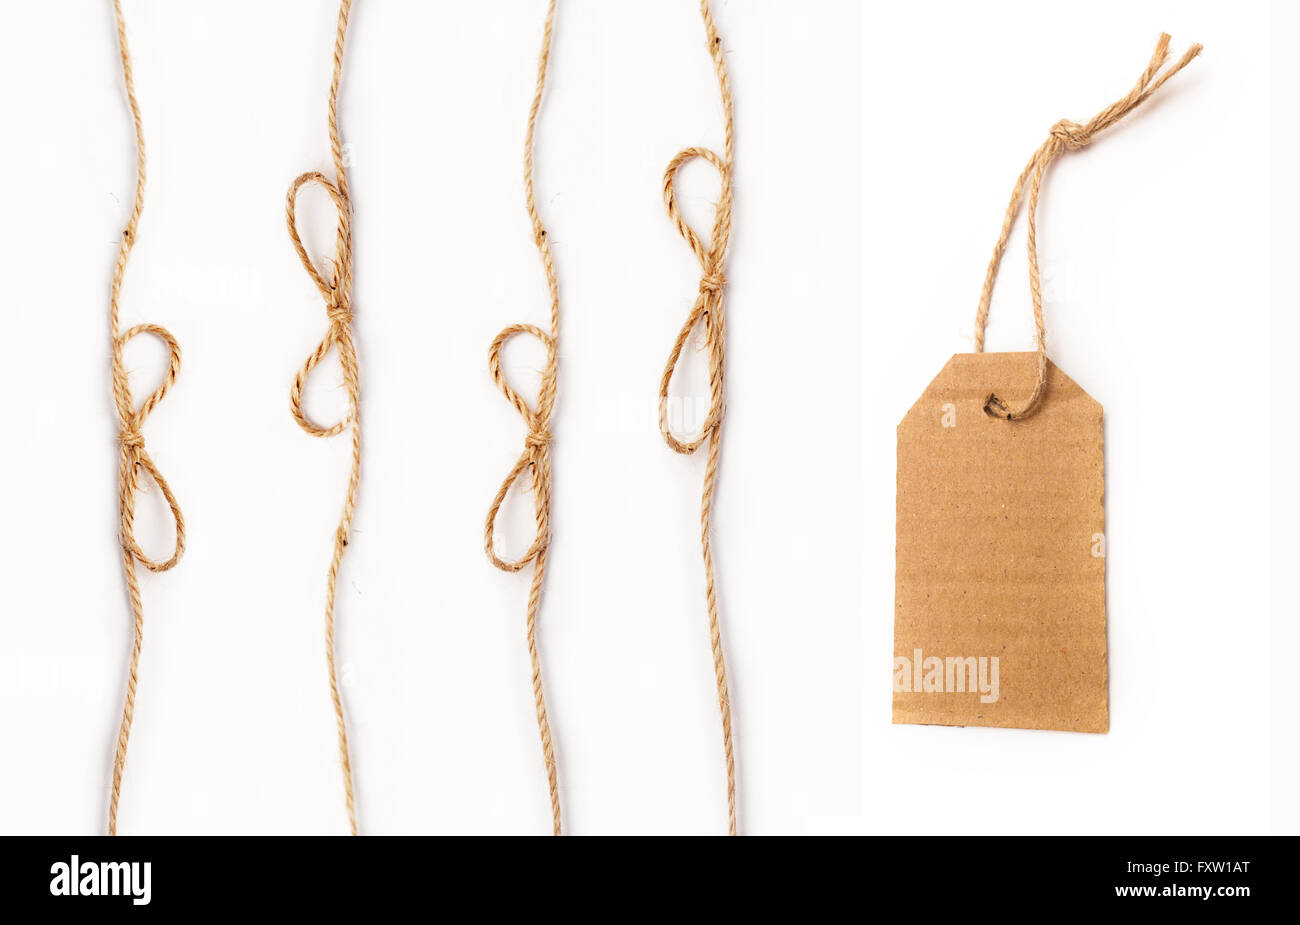 rope with a bow and tag on white background - Stock Image